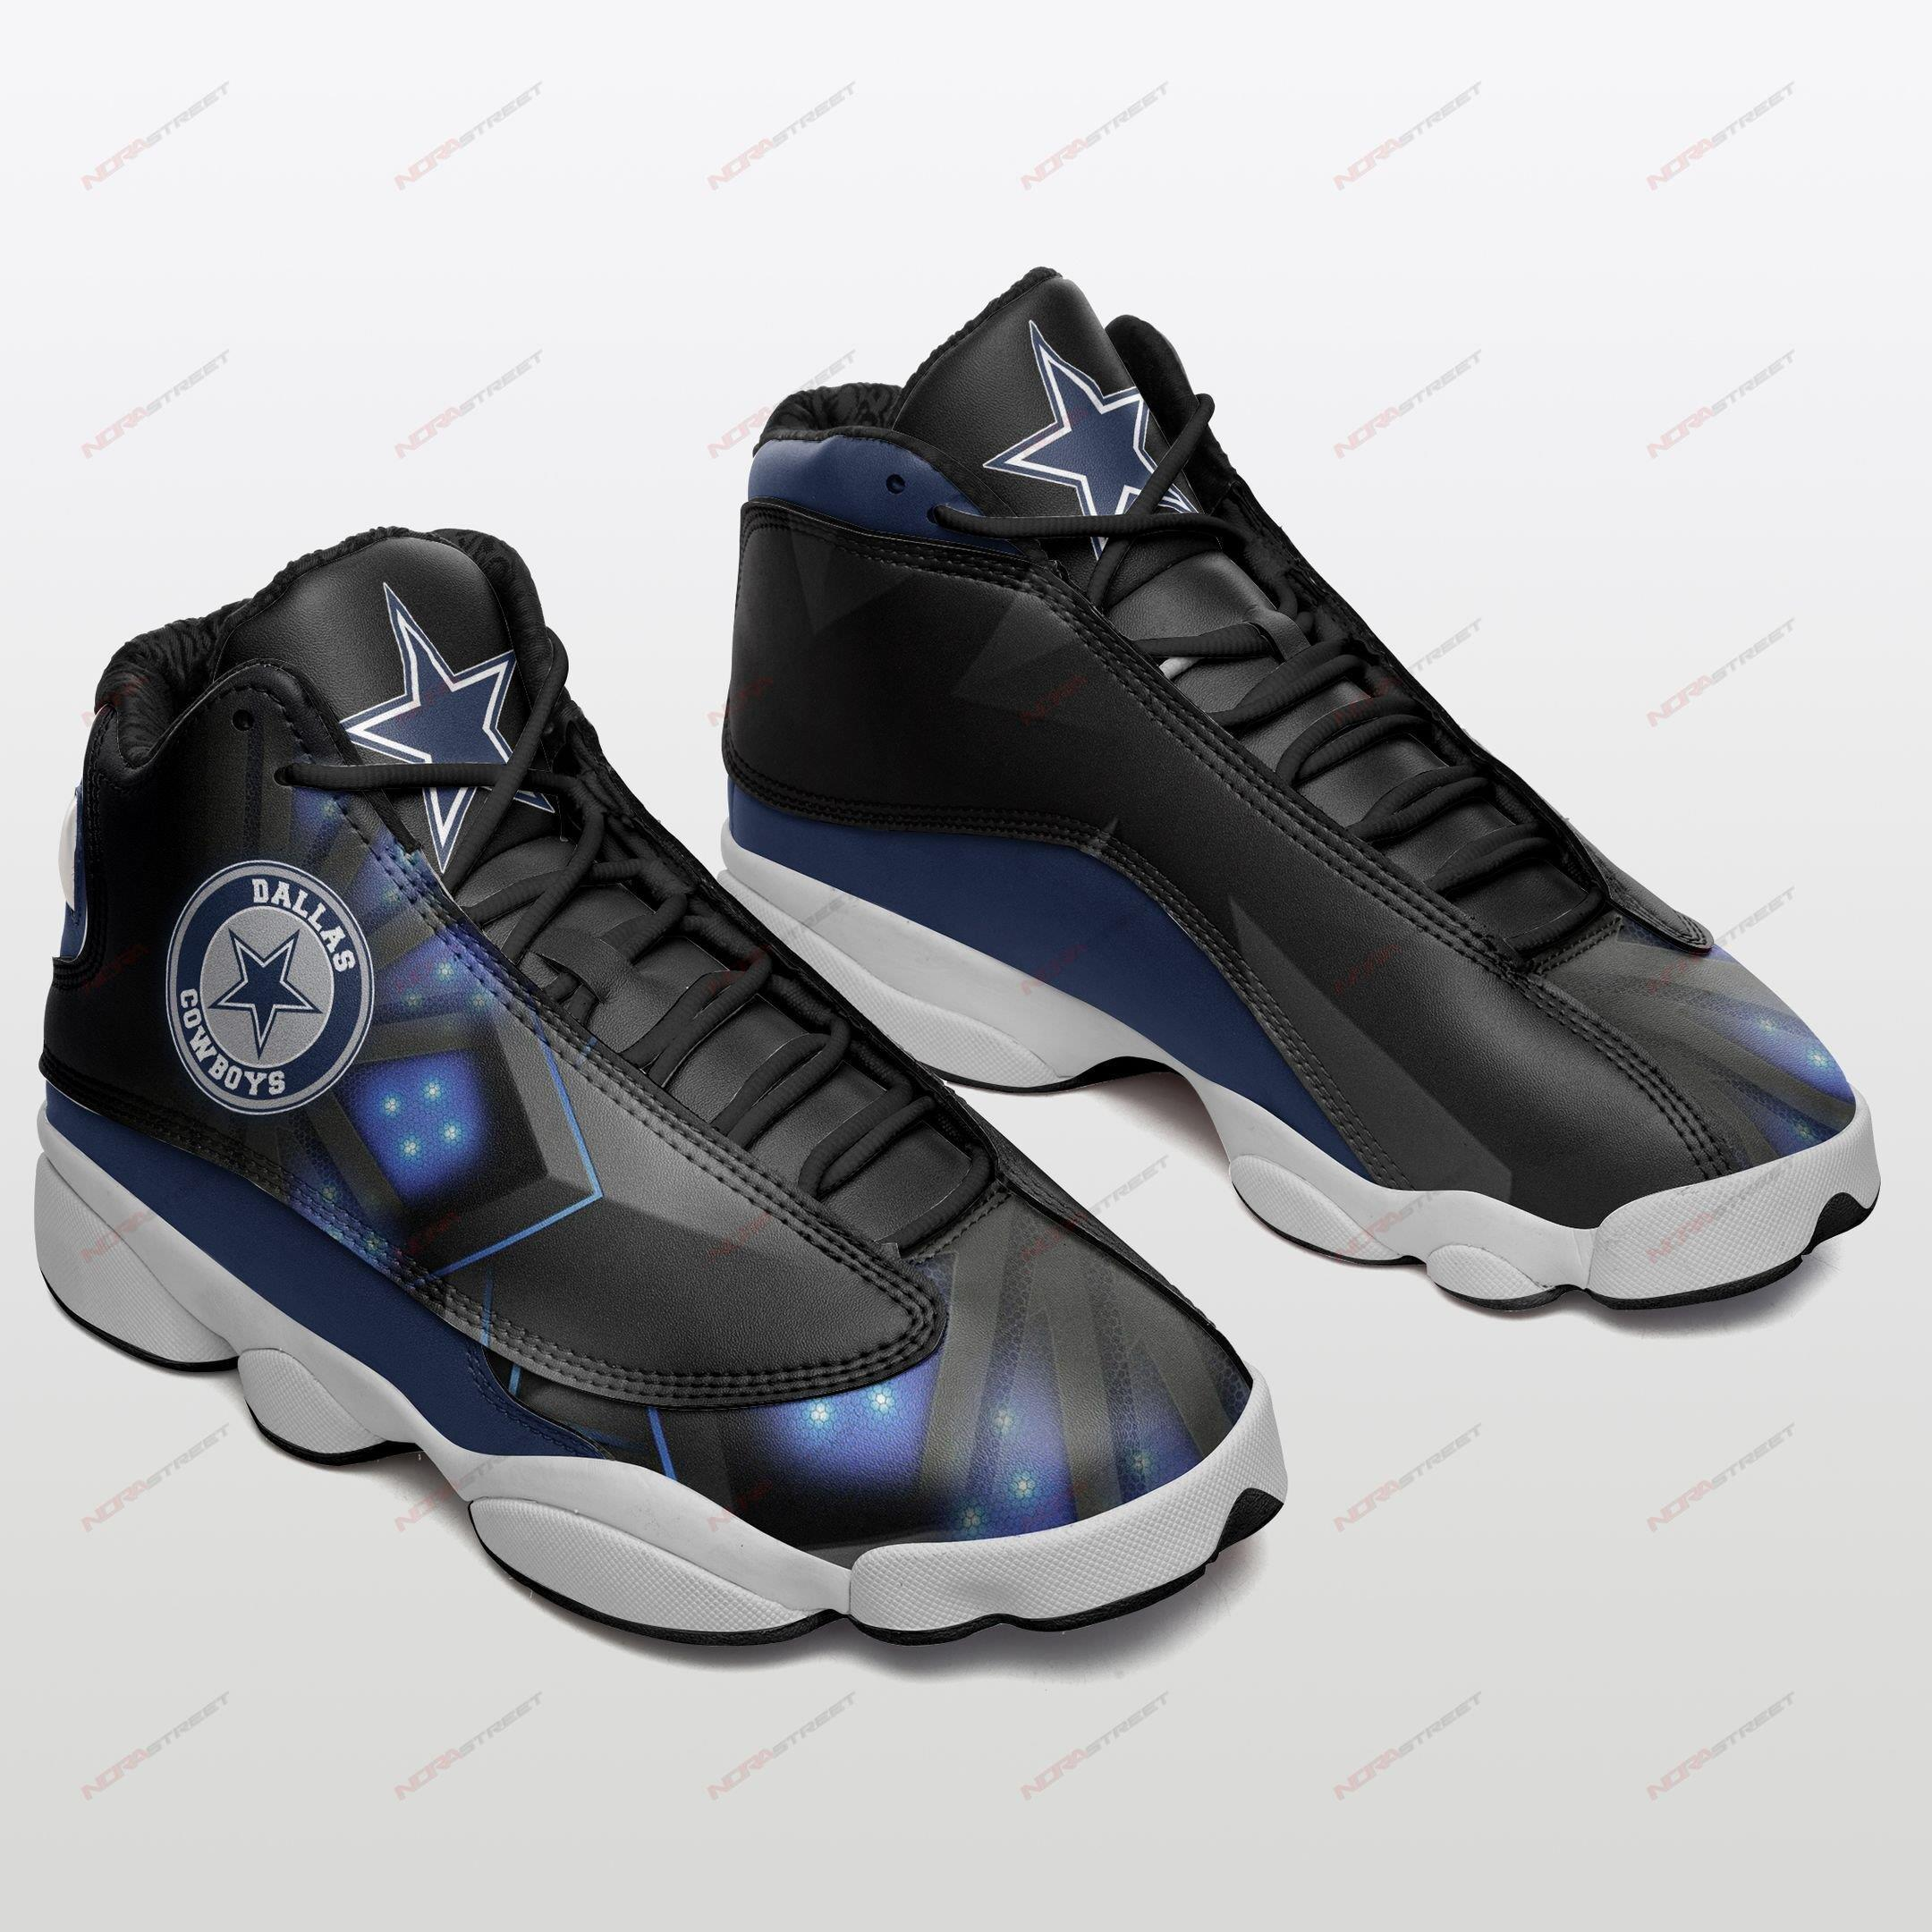 Dallas Cowboys Air Jordan 13 Sneakers Sport Shoes Plus Size